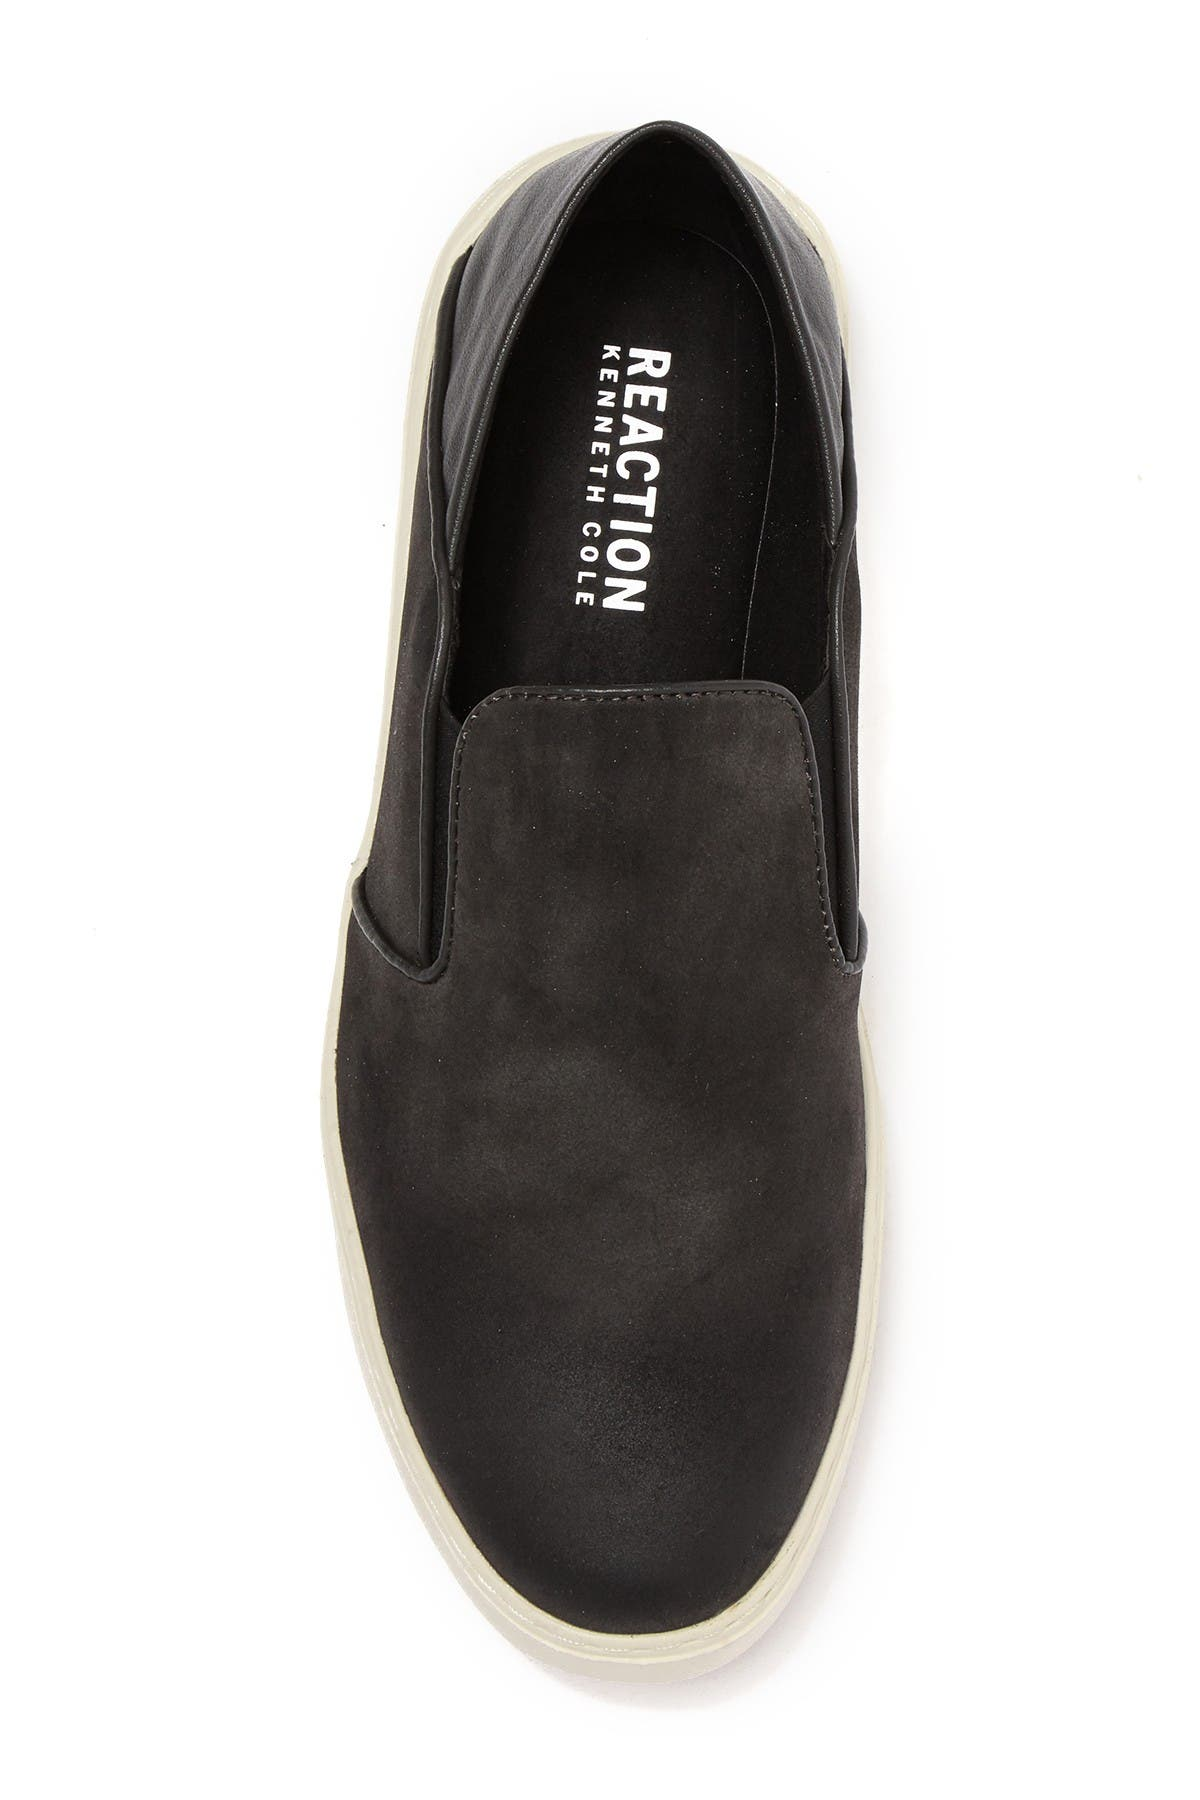 Image of Kenneth Cole Reaction Irwin Flex Slip-On Sneaker